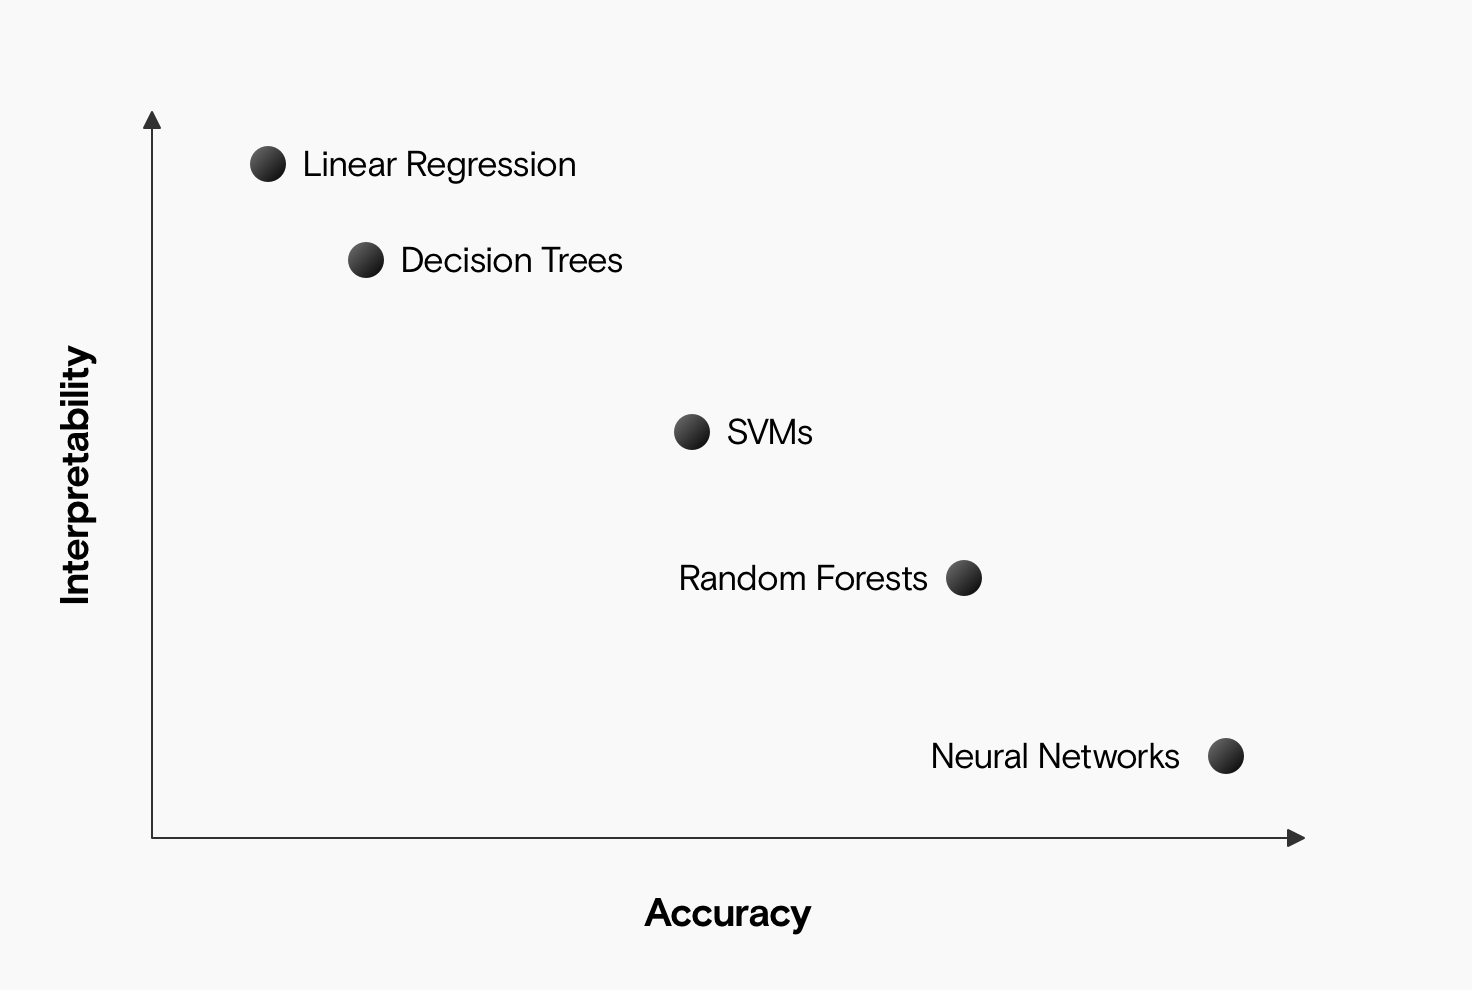 A chart showing interpretability on the y-axis and accuracy on the x-axis. Linear regression is at the top left (very interpretable, not very accurate) and negative correlation runs through decision trees, SVMs, random forests, and neural networks.